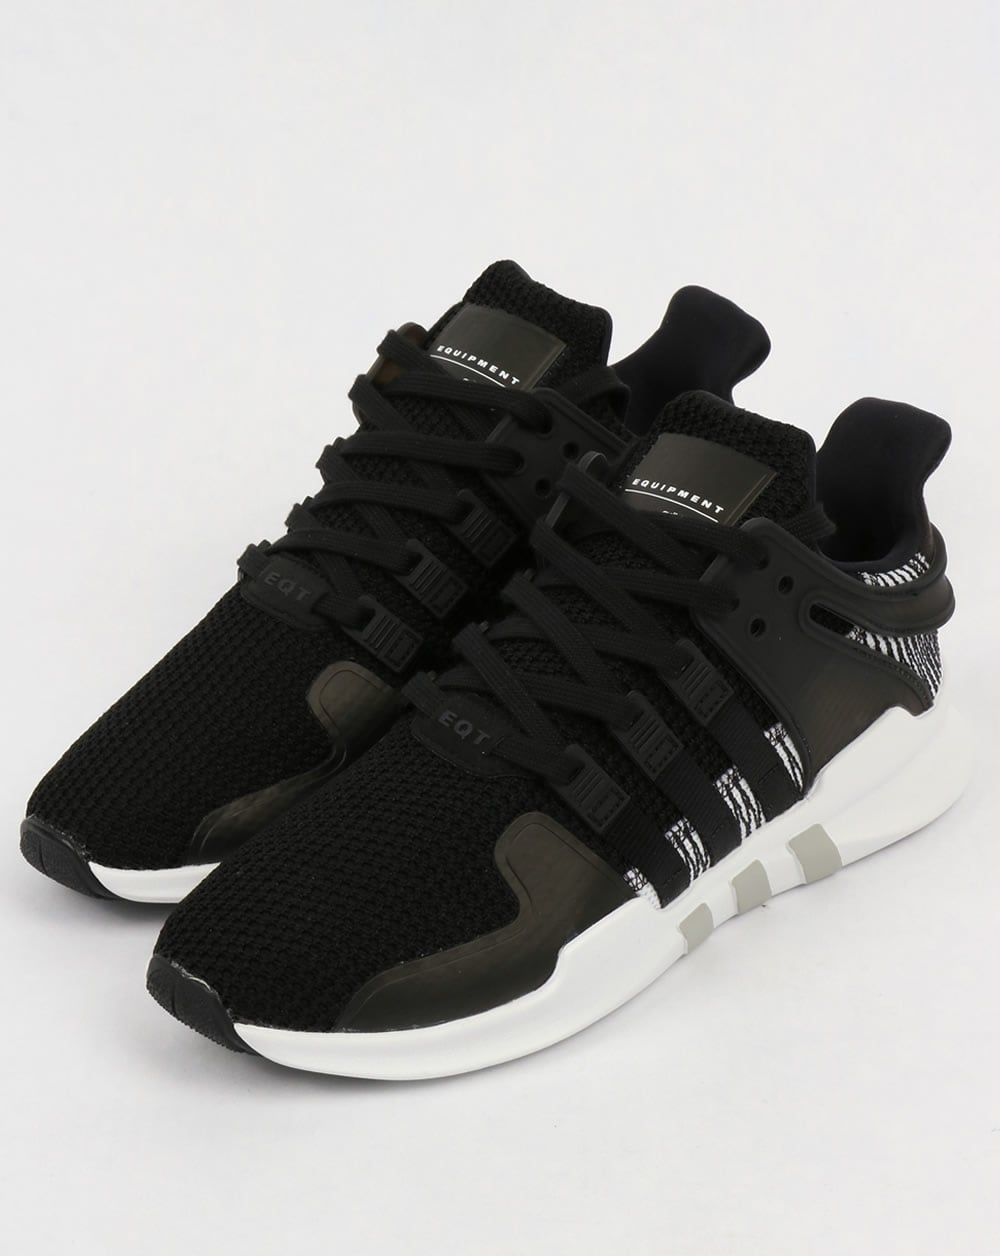 sneakers for cheap 412c6 dedd7 Adidas EQT Support Adv Trainers Black White